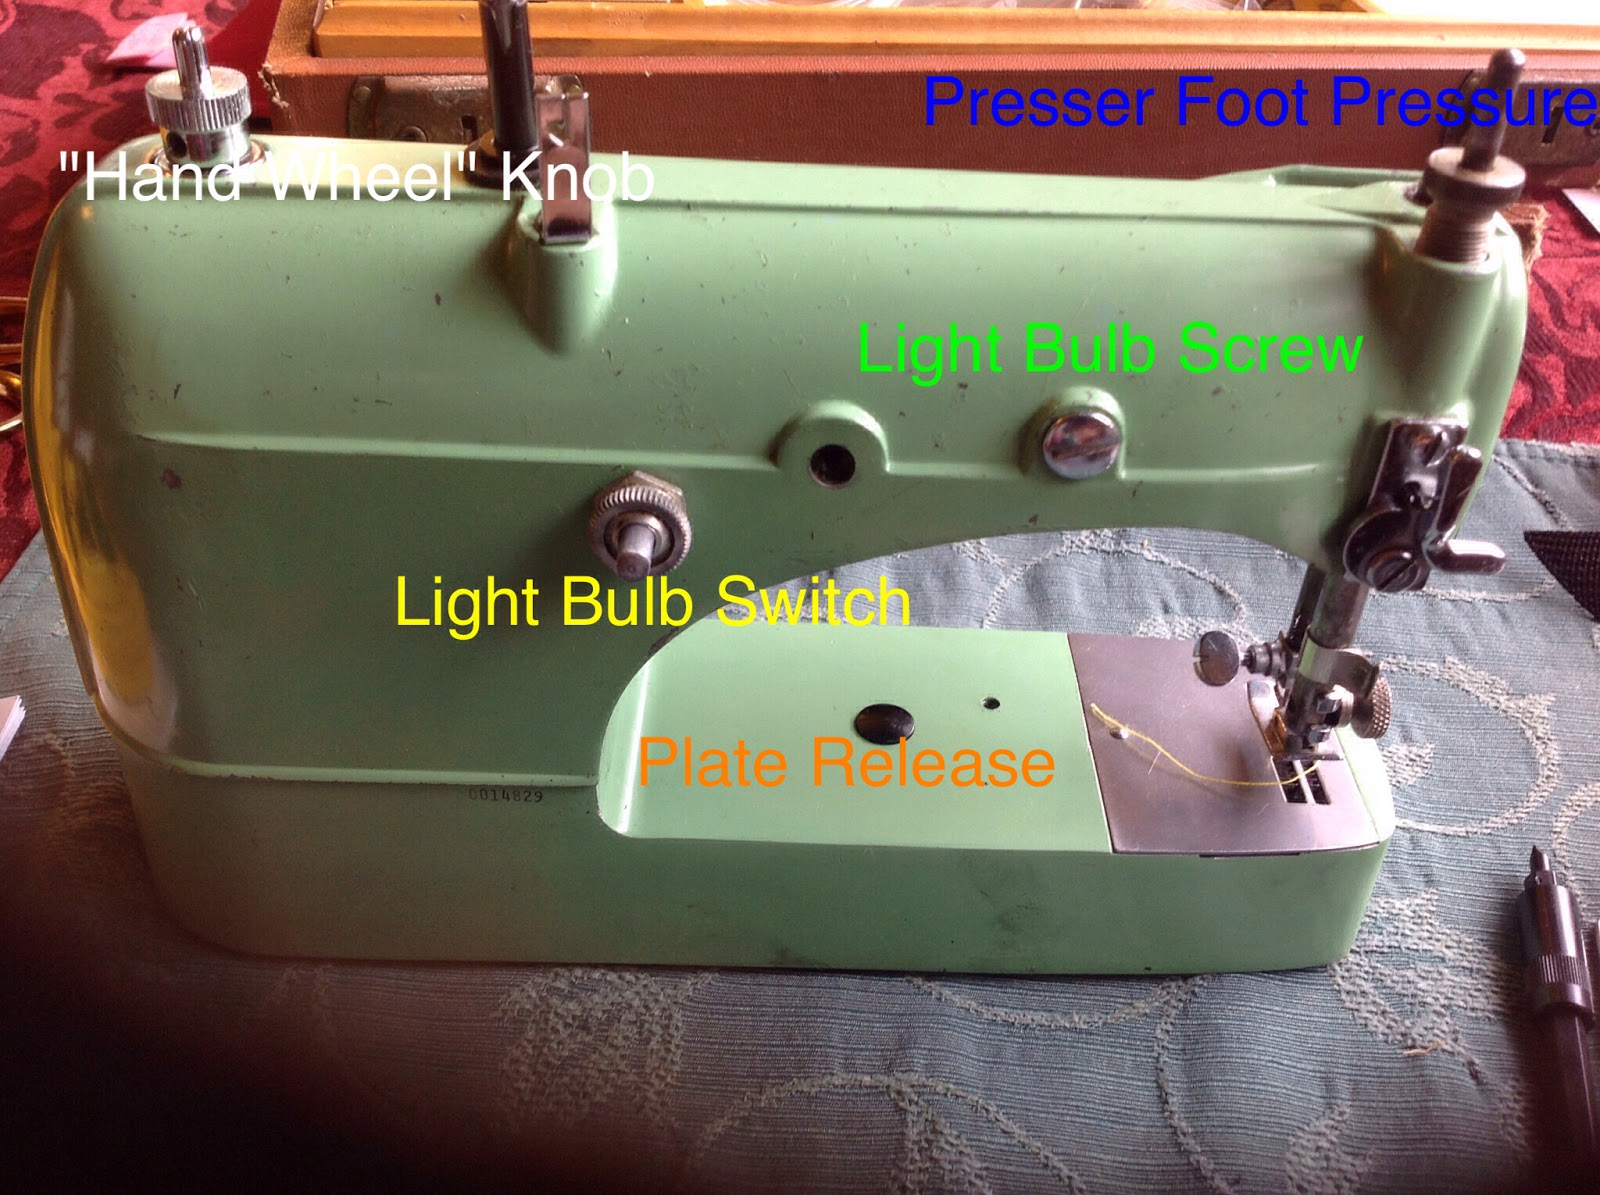 Manual sewing machine - a little helper